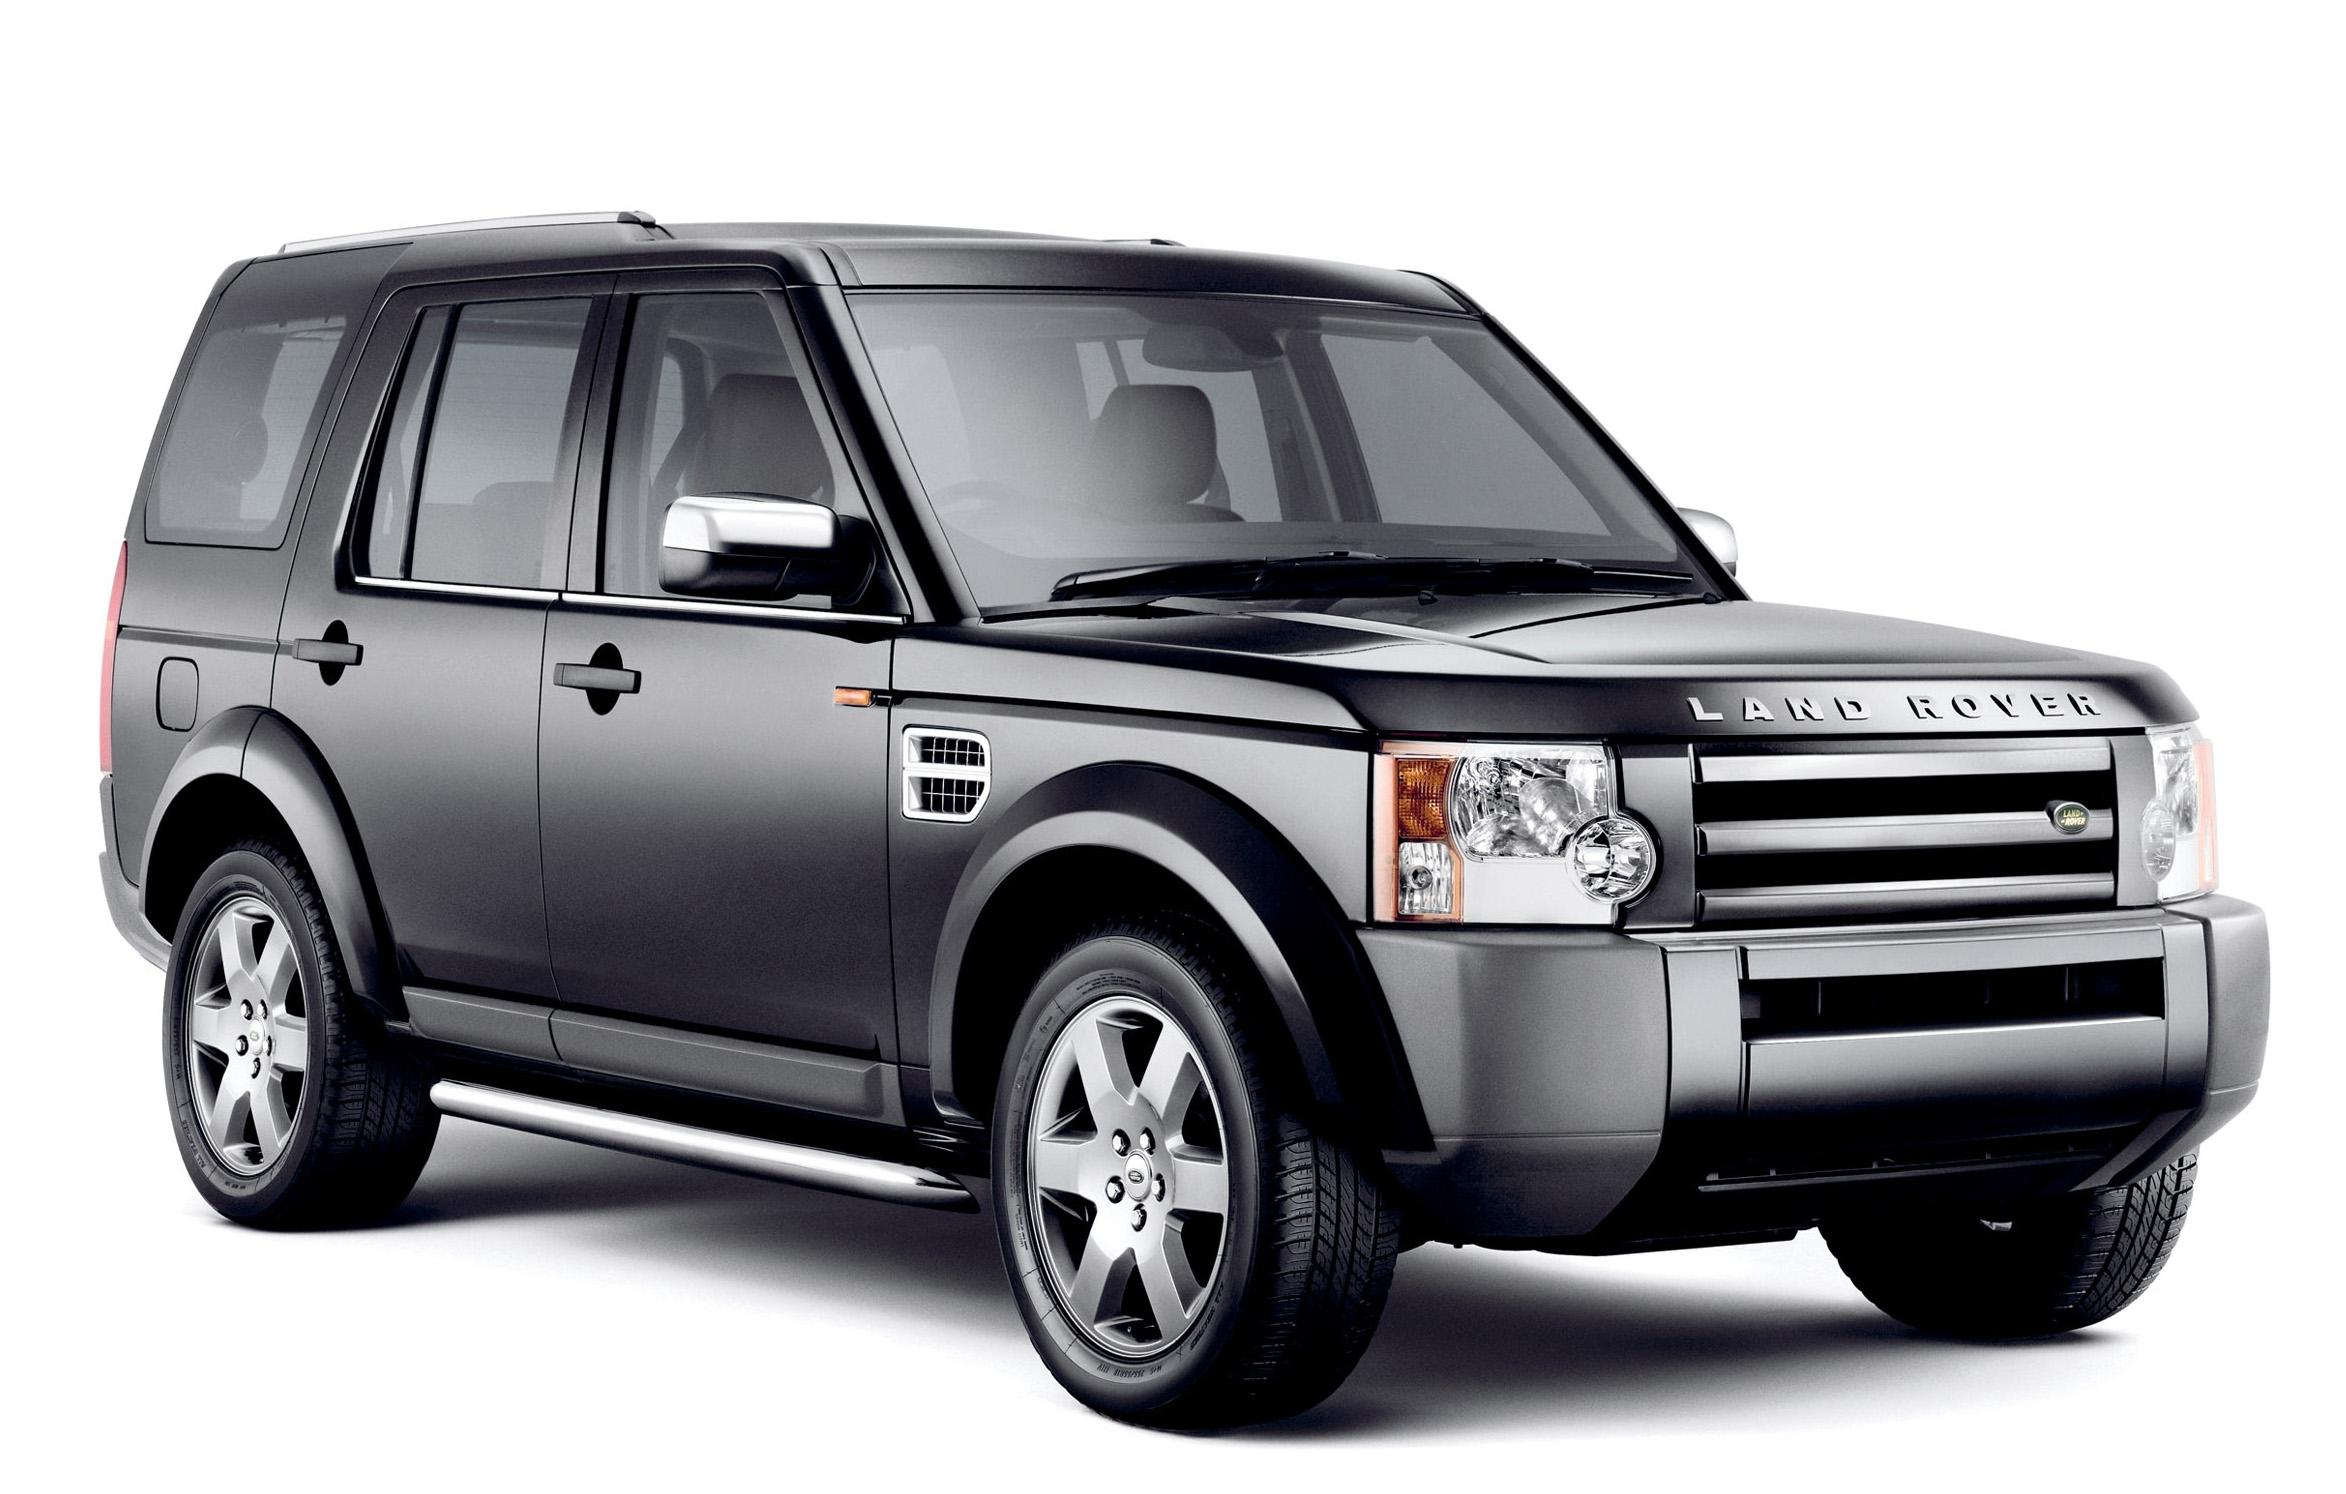 2007 Land Rover Discovery 3 Pursuit Review Top Speed